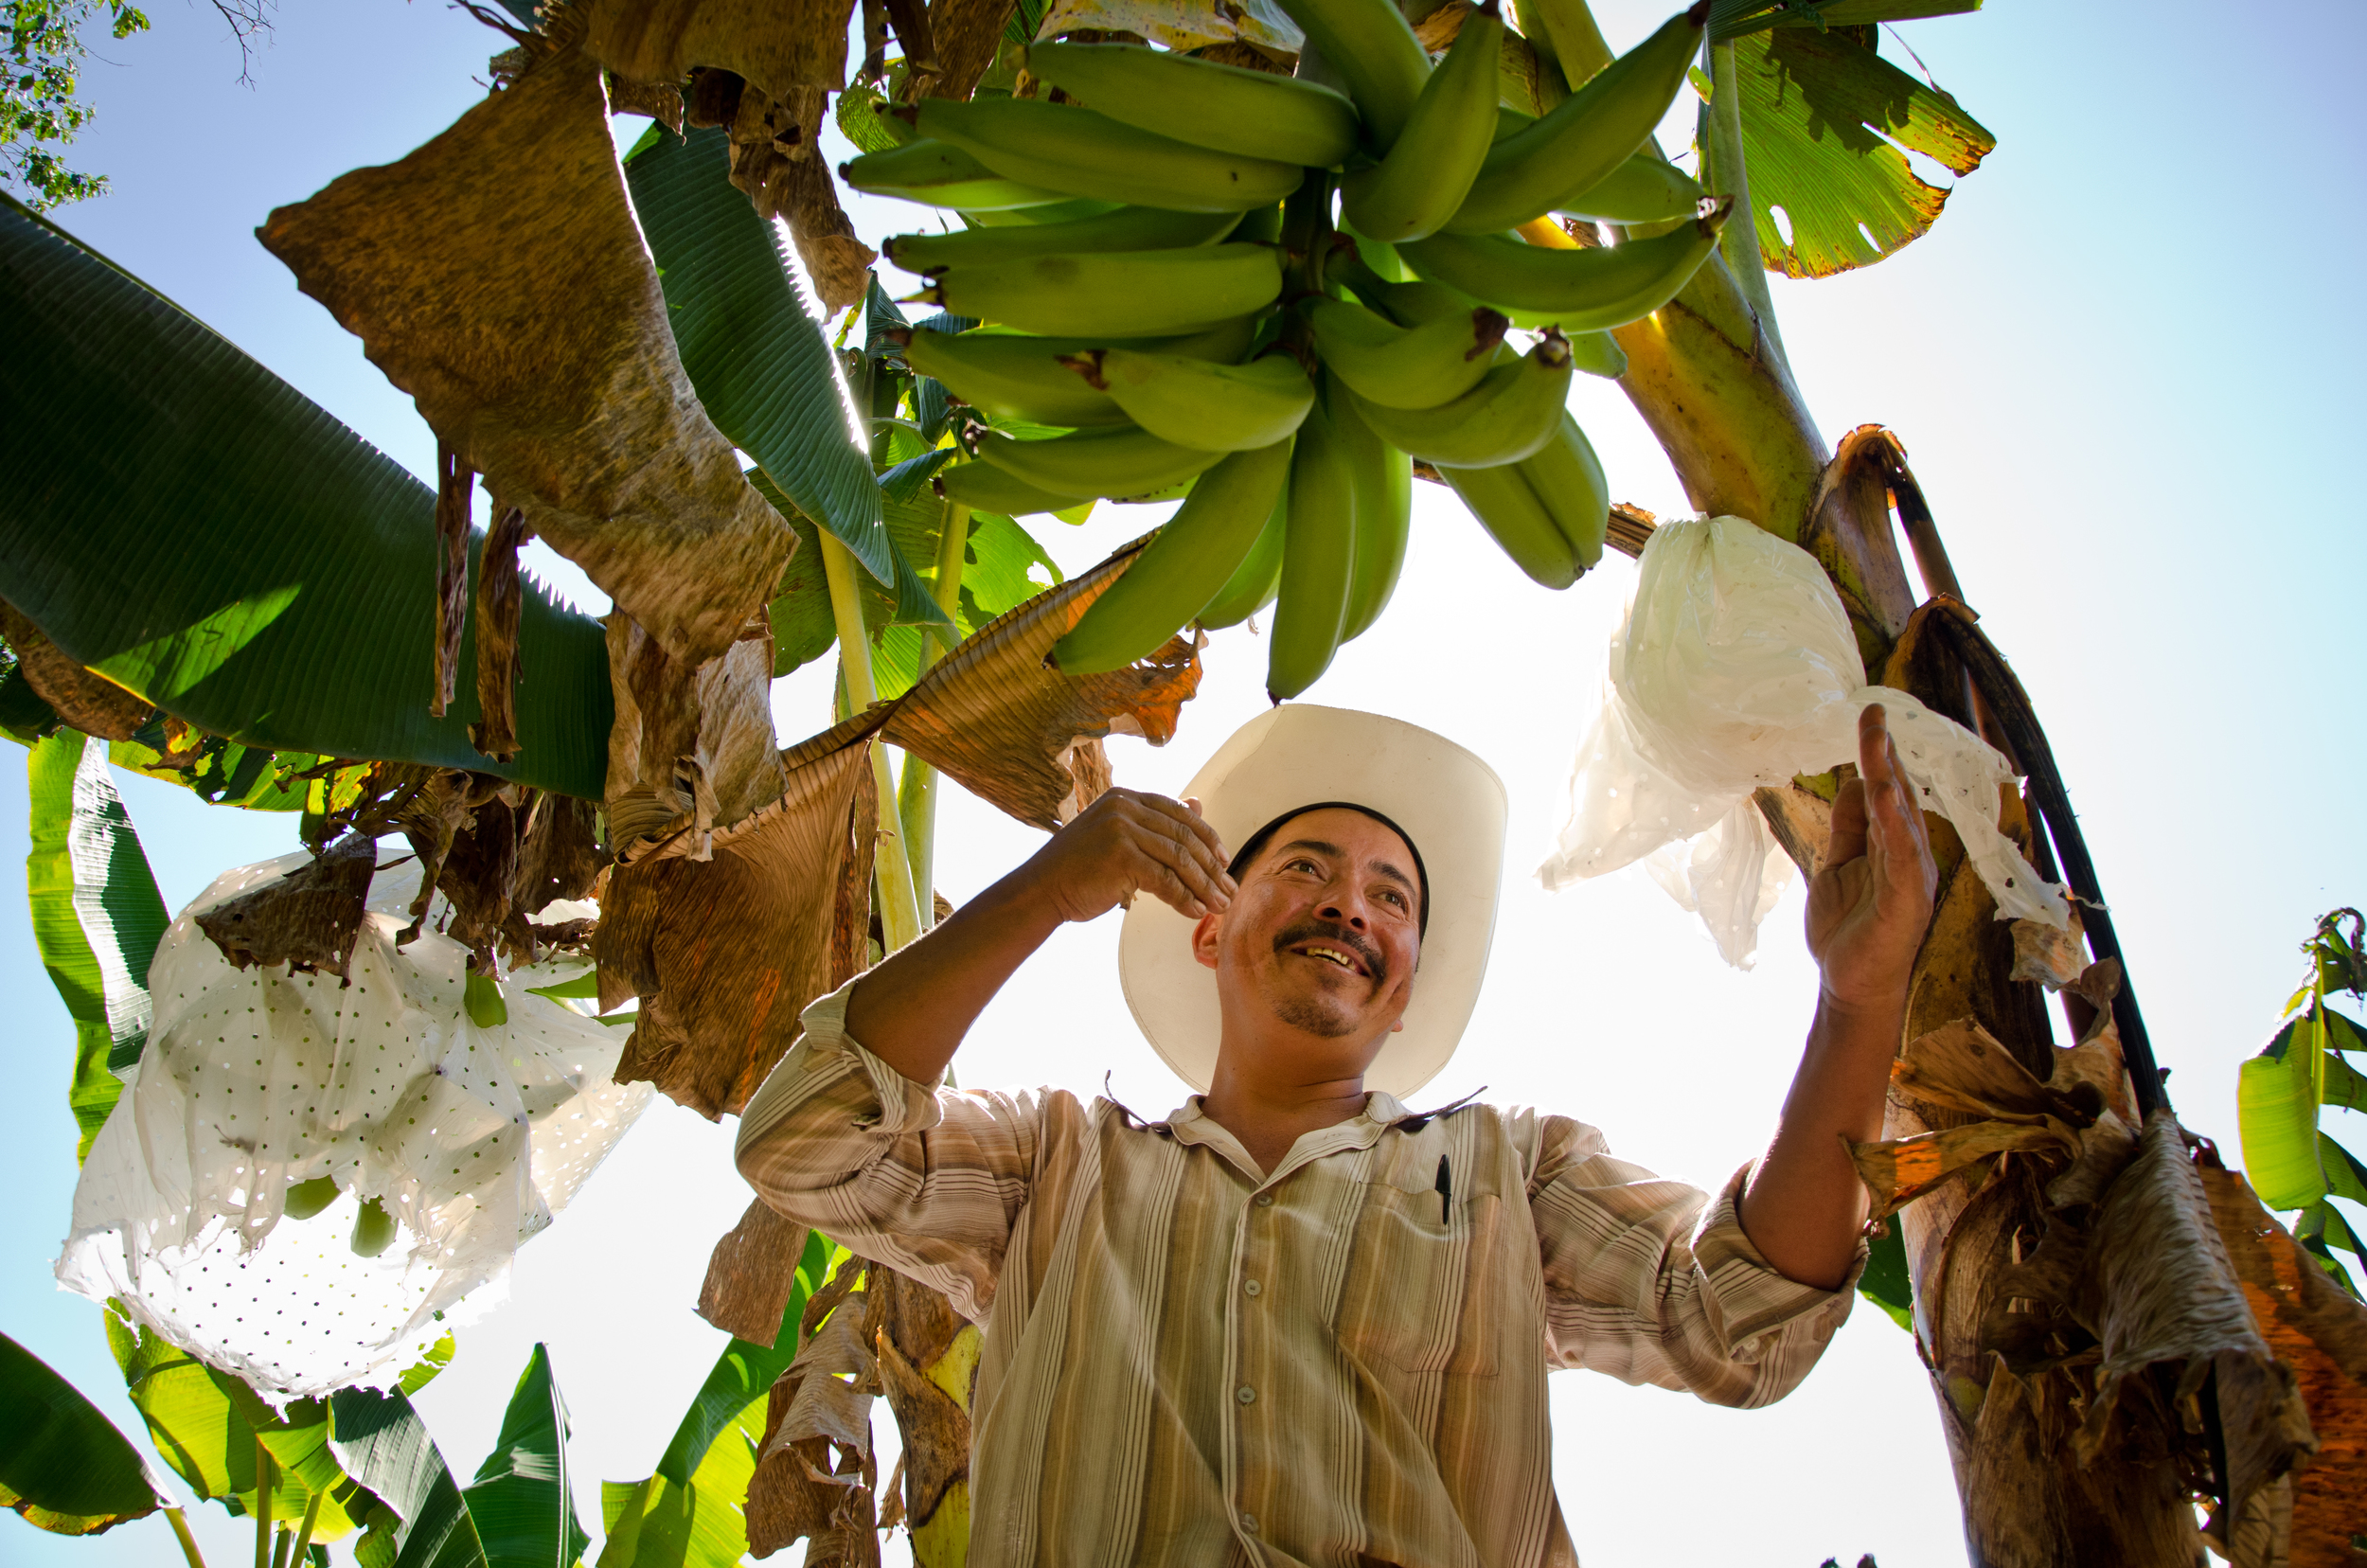 Lelis Edgardo Cantarero Palacios, 40, tends to the last plantains of the harvest season on his farm in central Honduras. An NGO helped him get started, and in turn he must give plantain seedlings to other farmers to help them start their own farms too.